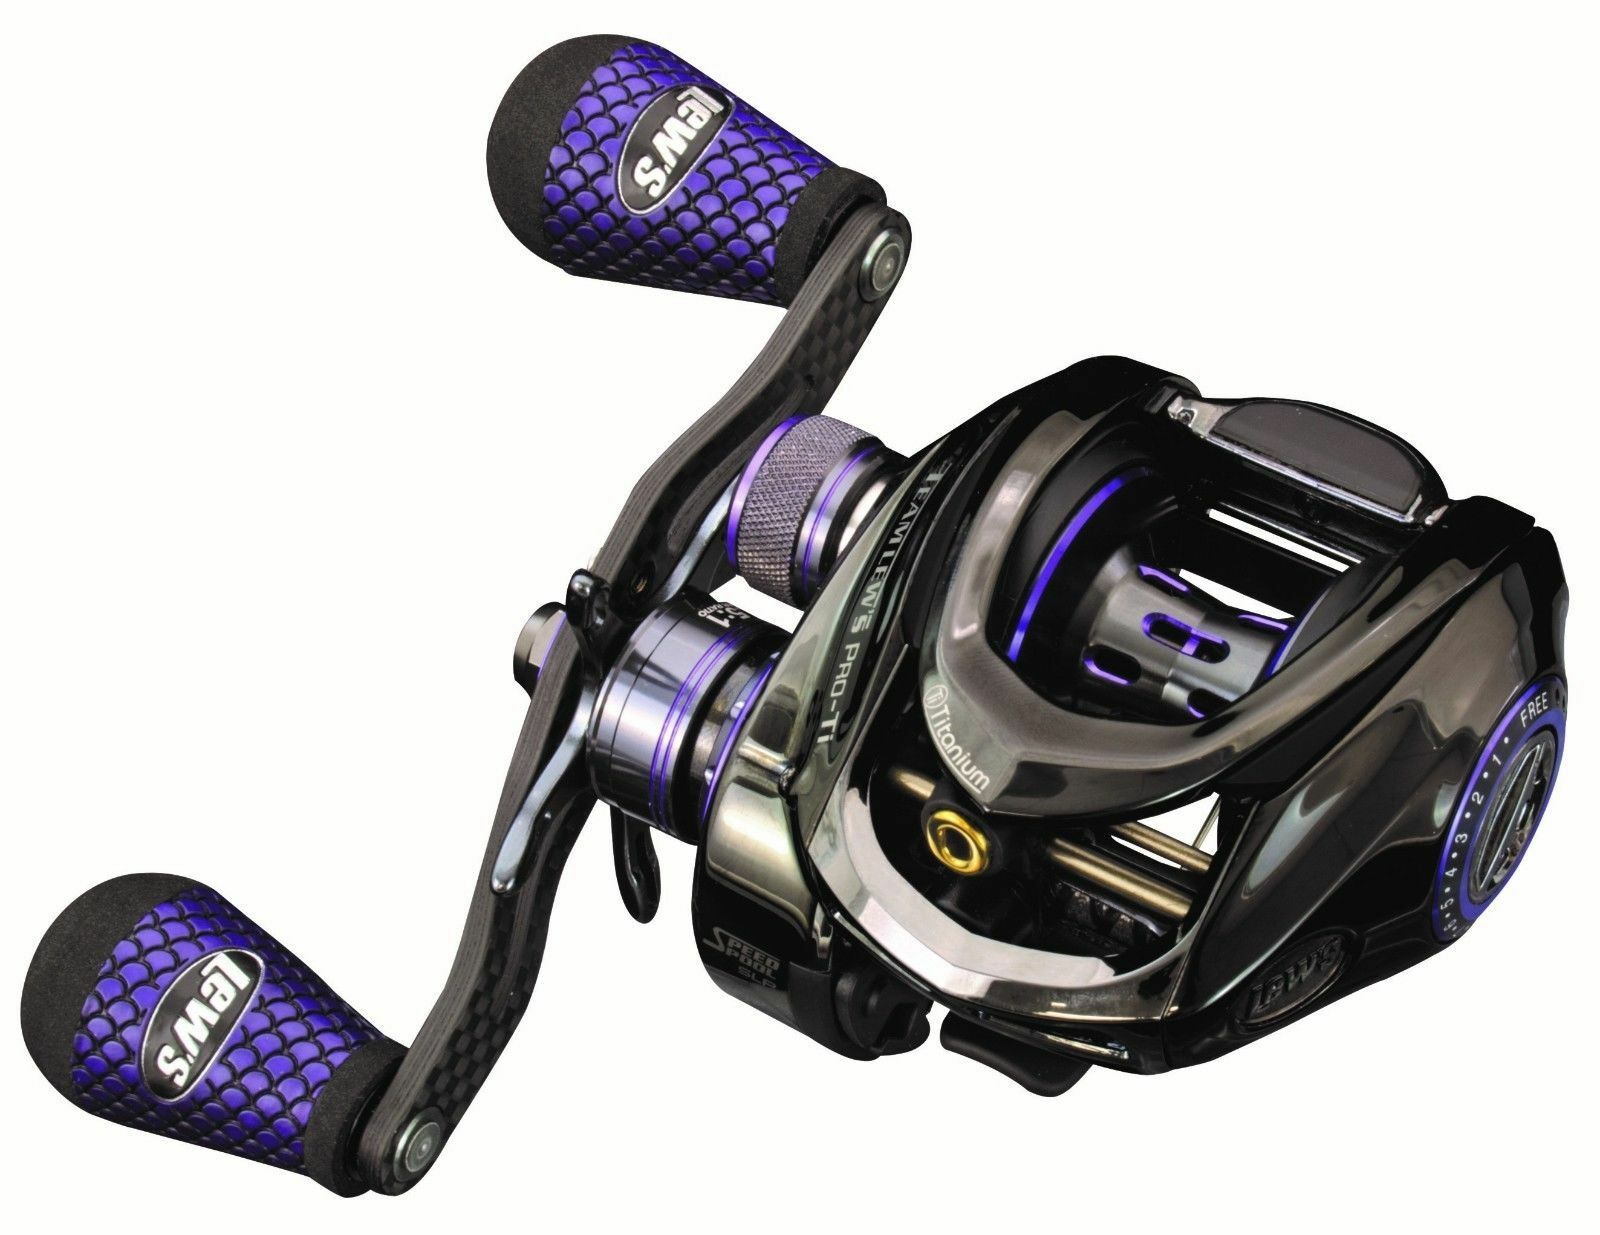 Lew's Team Lew's Pro-Ti SLP Speed Spool 7.5 1 Right Hand Casting Reel - TLPT1SH